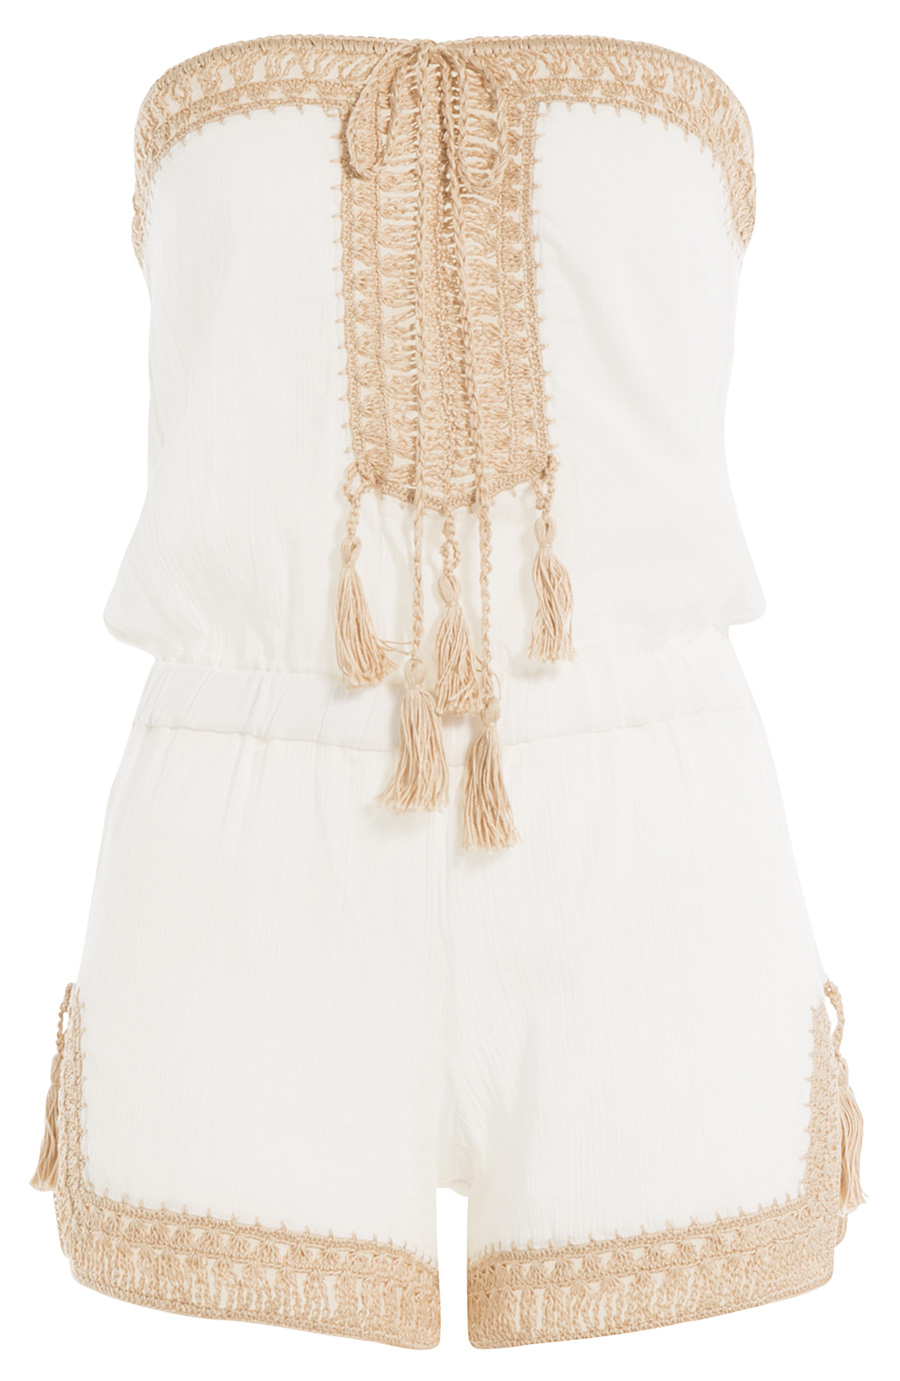 ANNA KOSTUROVA 'HELENA' COTTON PLAYSUIT